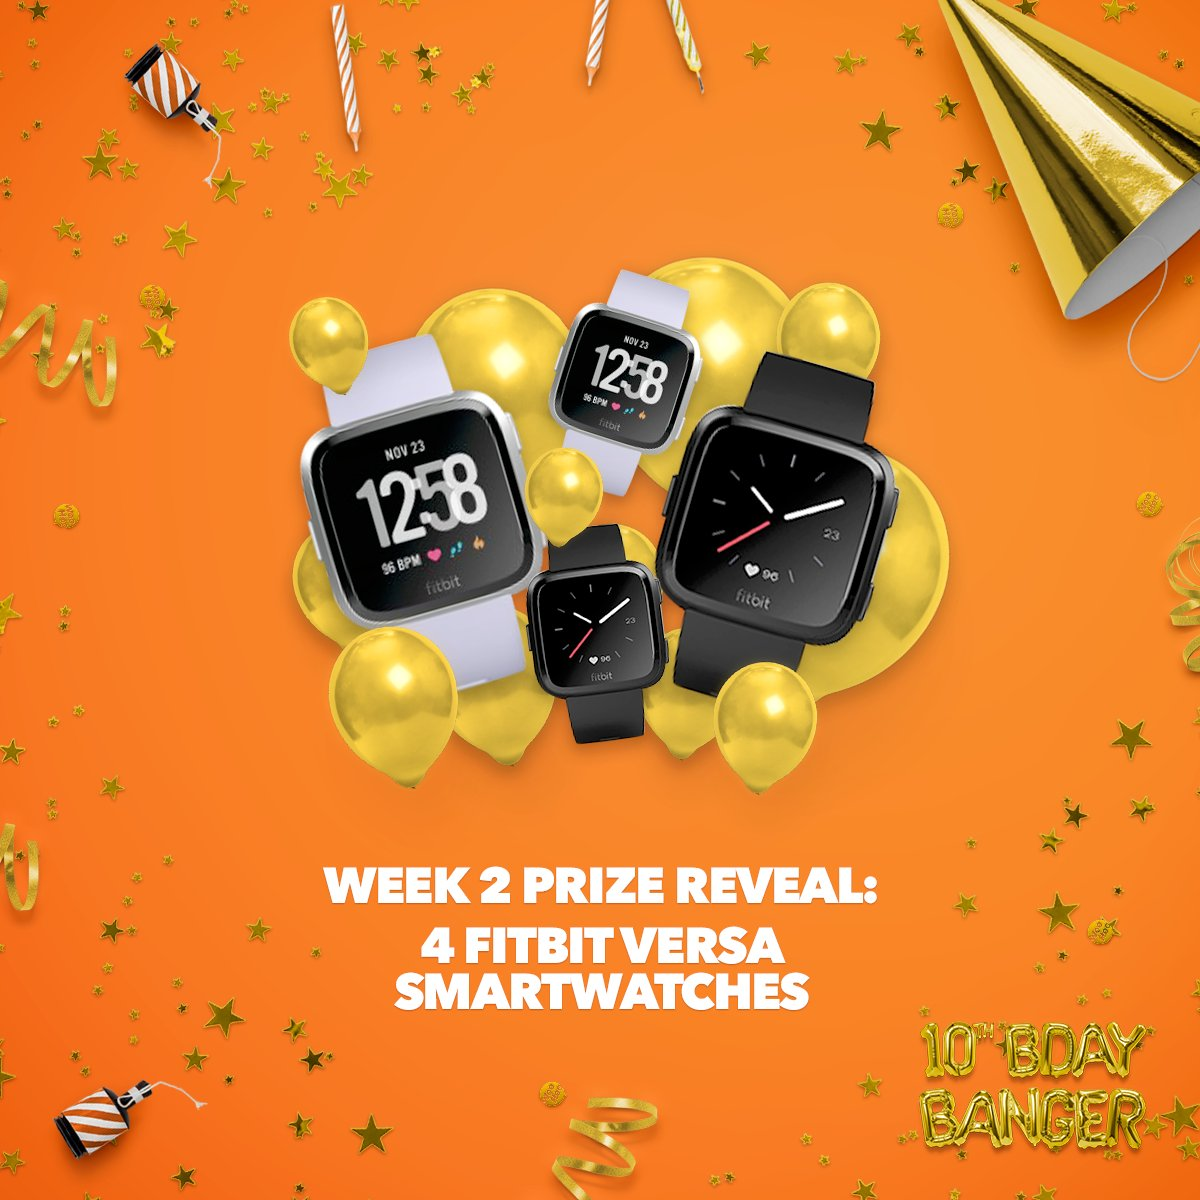 The next prizes revealed in our #birthdaybanger giveaway are four brand new Fitbit Versa smartwatches. Make sure you've applied for your 2018 tax refund to be in to win one! T&Cs apply.  http://www.woohoo.co.nz/birthday  #birthdaybanger #fitspiration